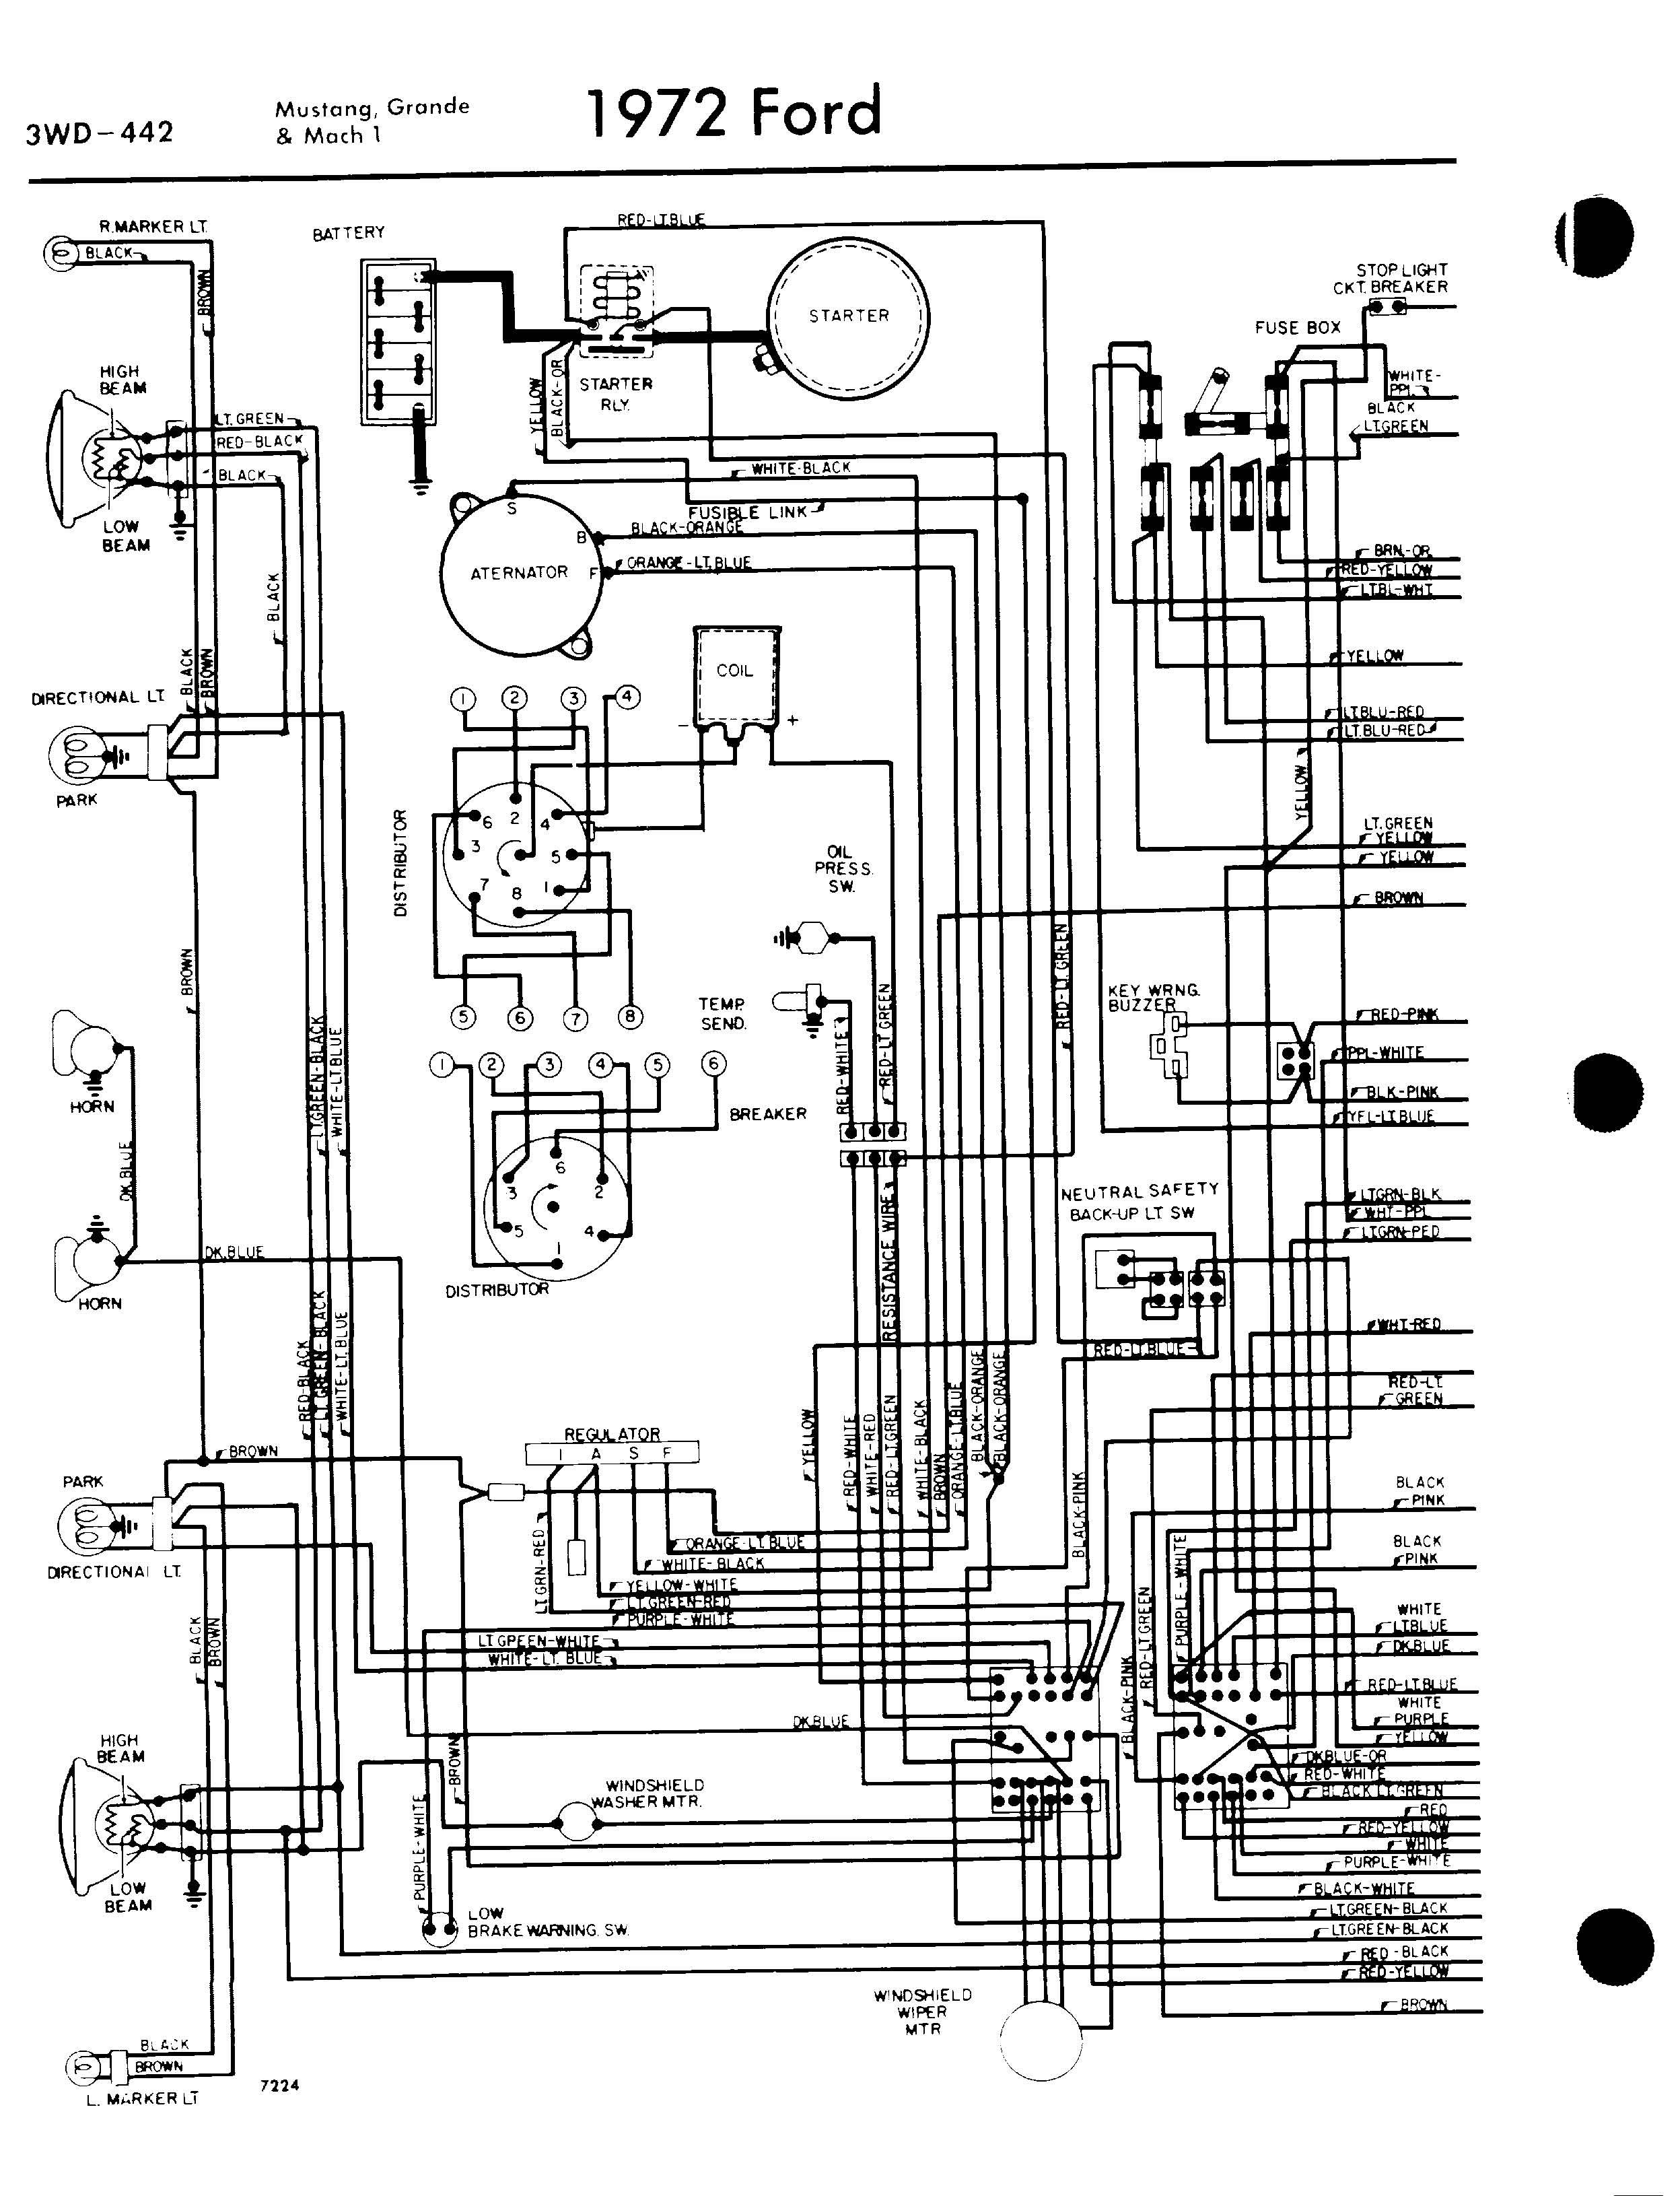 1973 Chevy Nova Wiring Diagram 30 Images For 72 71af7a58e095e6a7716b32f1b23e8bd2 All Generation Schematics Forum Readingrat Net At